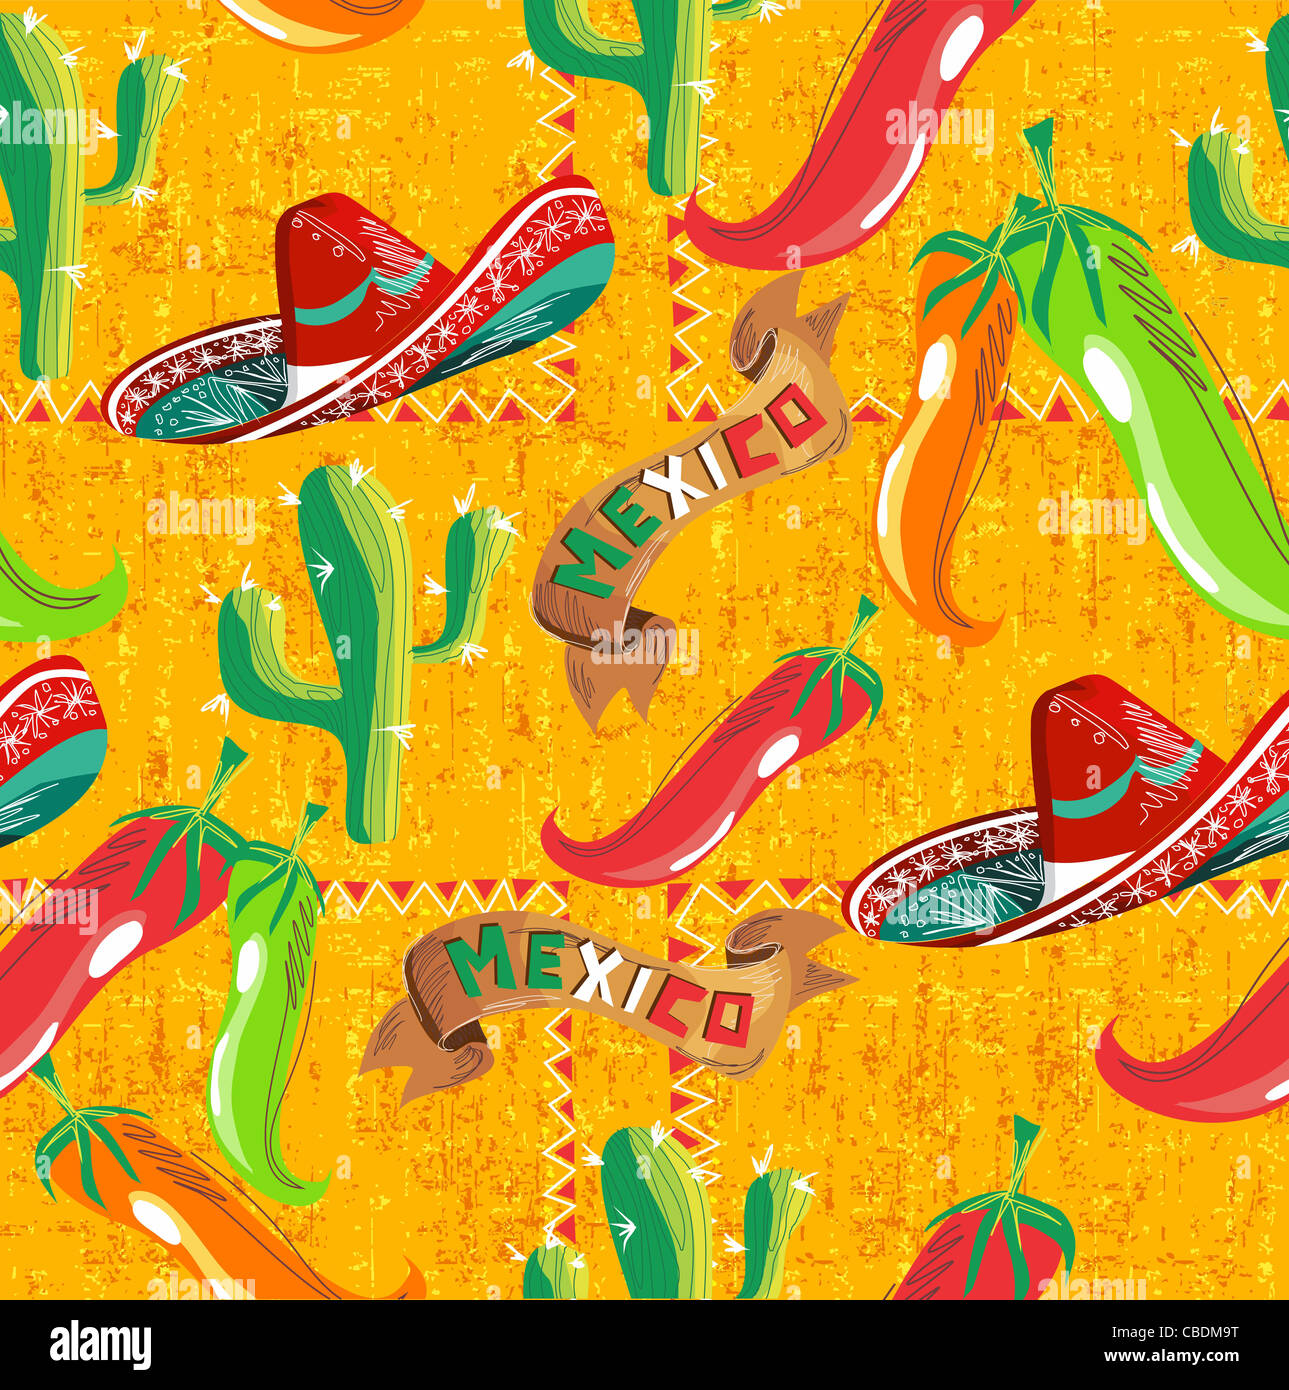 mexican pattern with cactus, hat and chill illustration over grunge